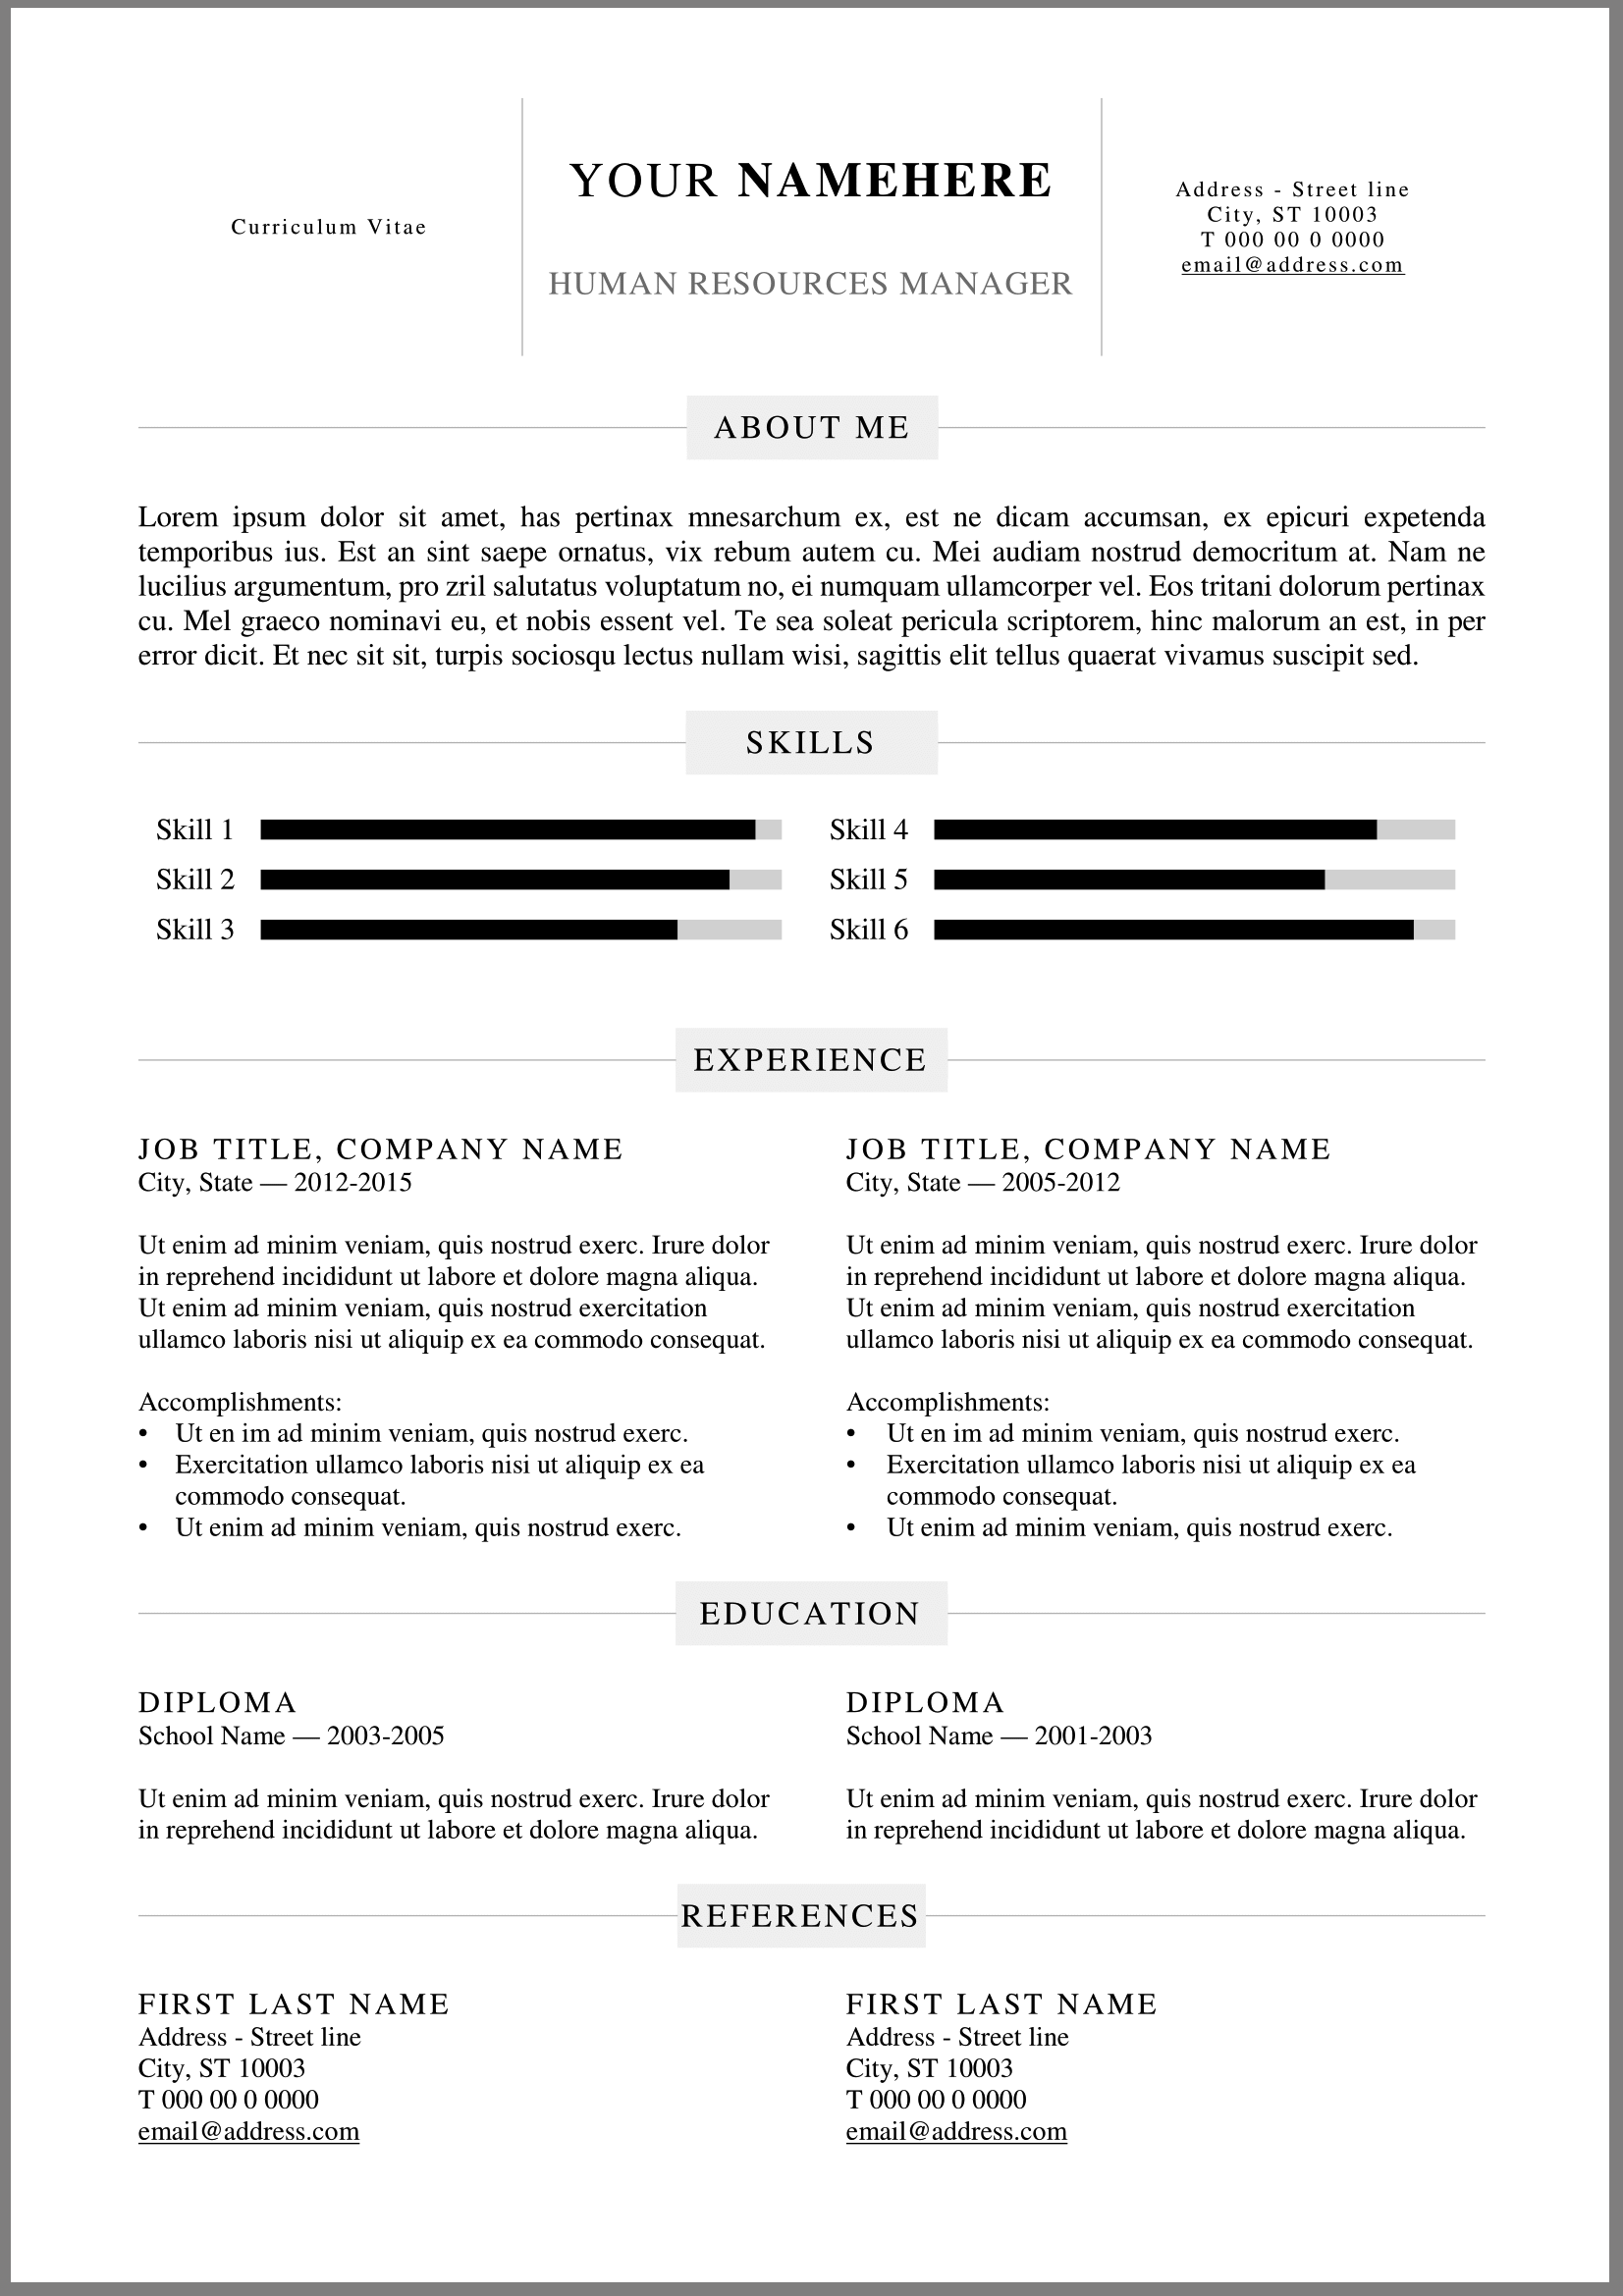 20 Free Resume Word Templates To Impress Your Employer Responsive - Template-resume-word